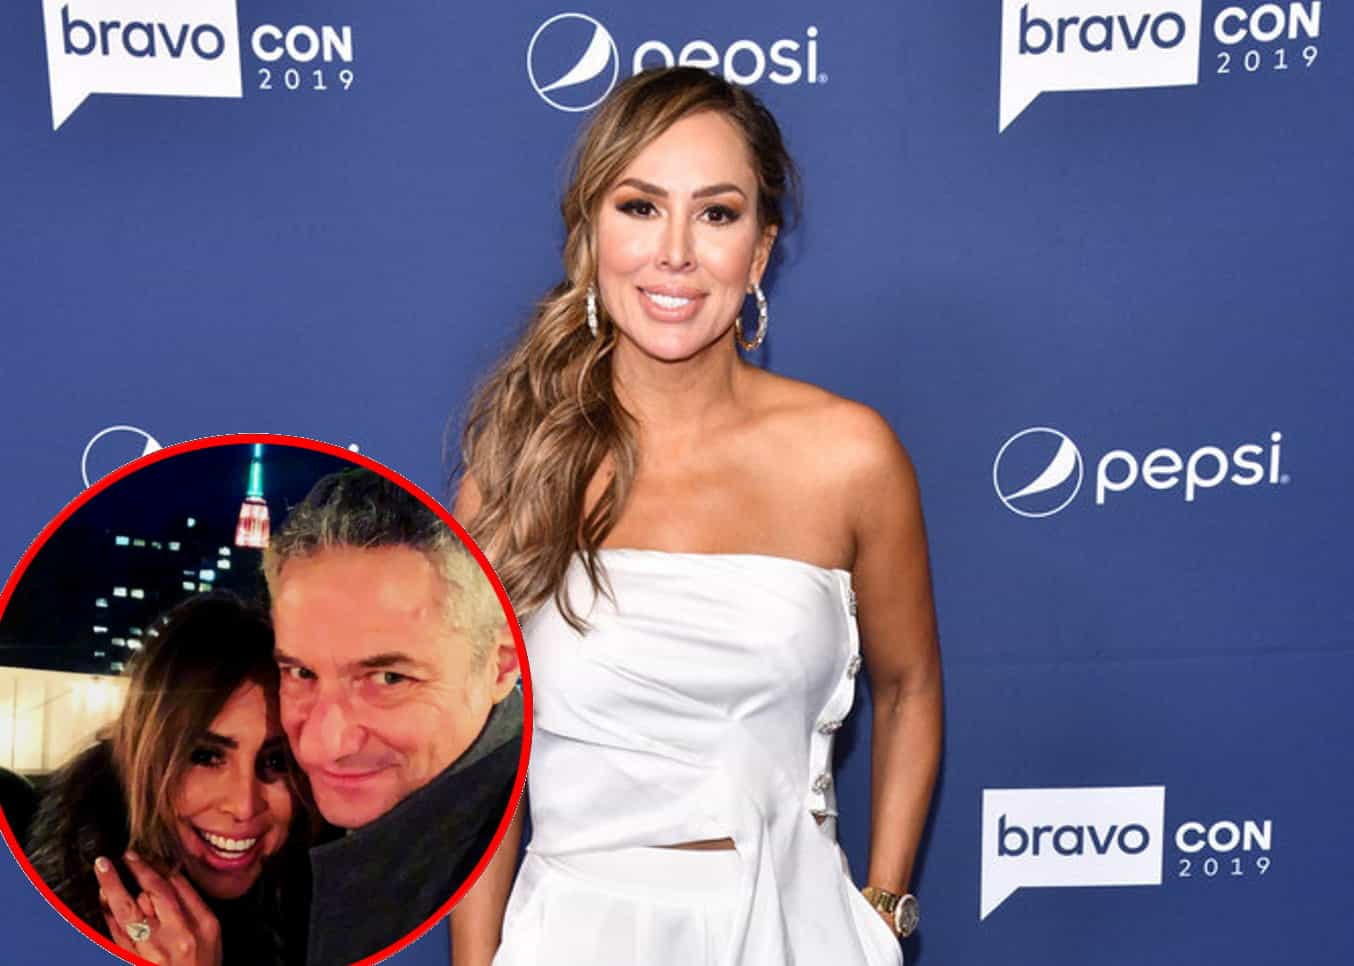 Kelly Dodd On How Rumors She Threw Mom Down the Stairs Began, Plus RHOC Star Admits Daughter Has Not Met Fiance Rick Leventhal and Will She Move to New York?